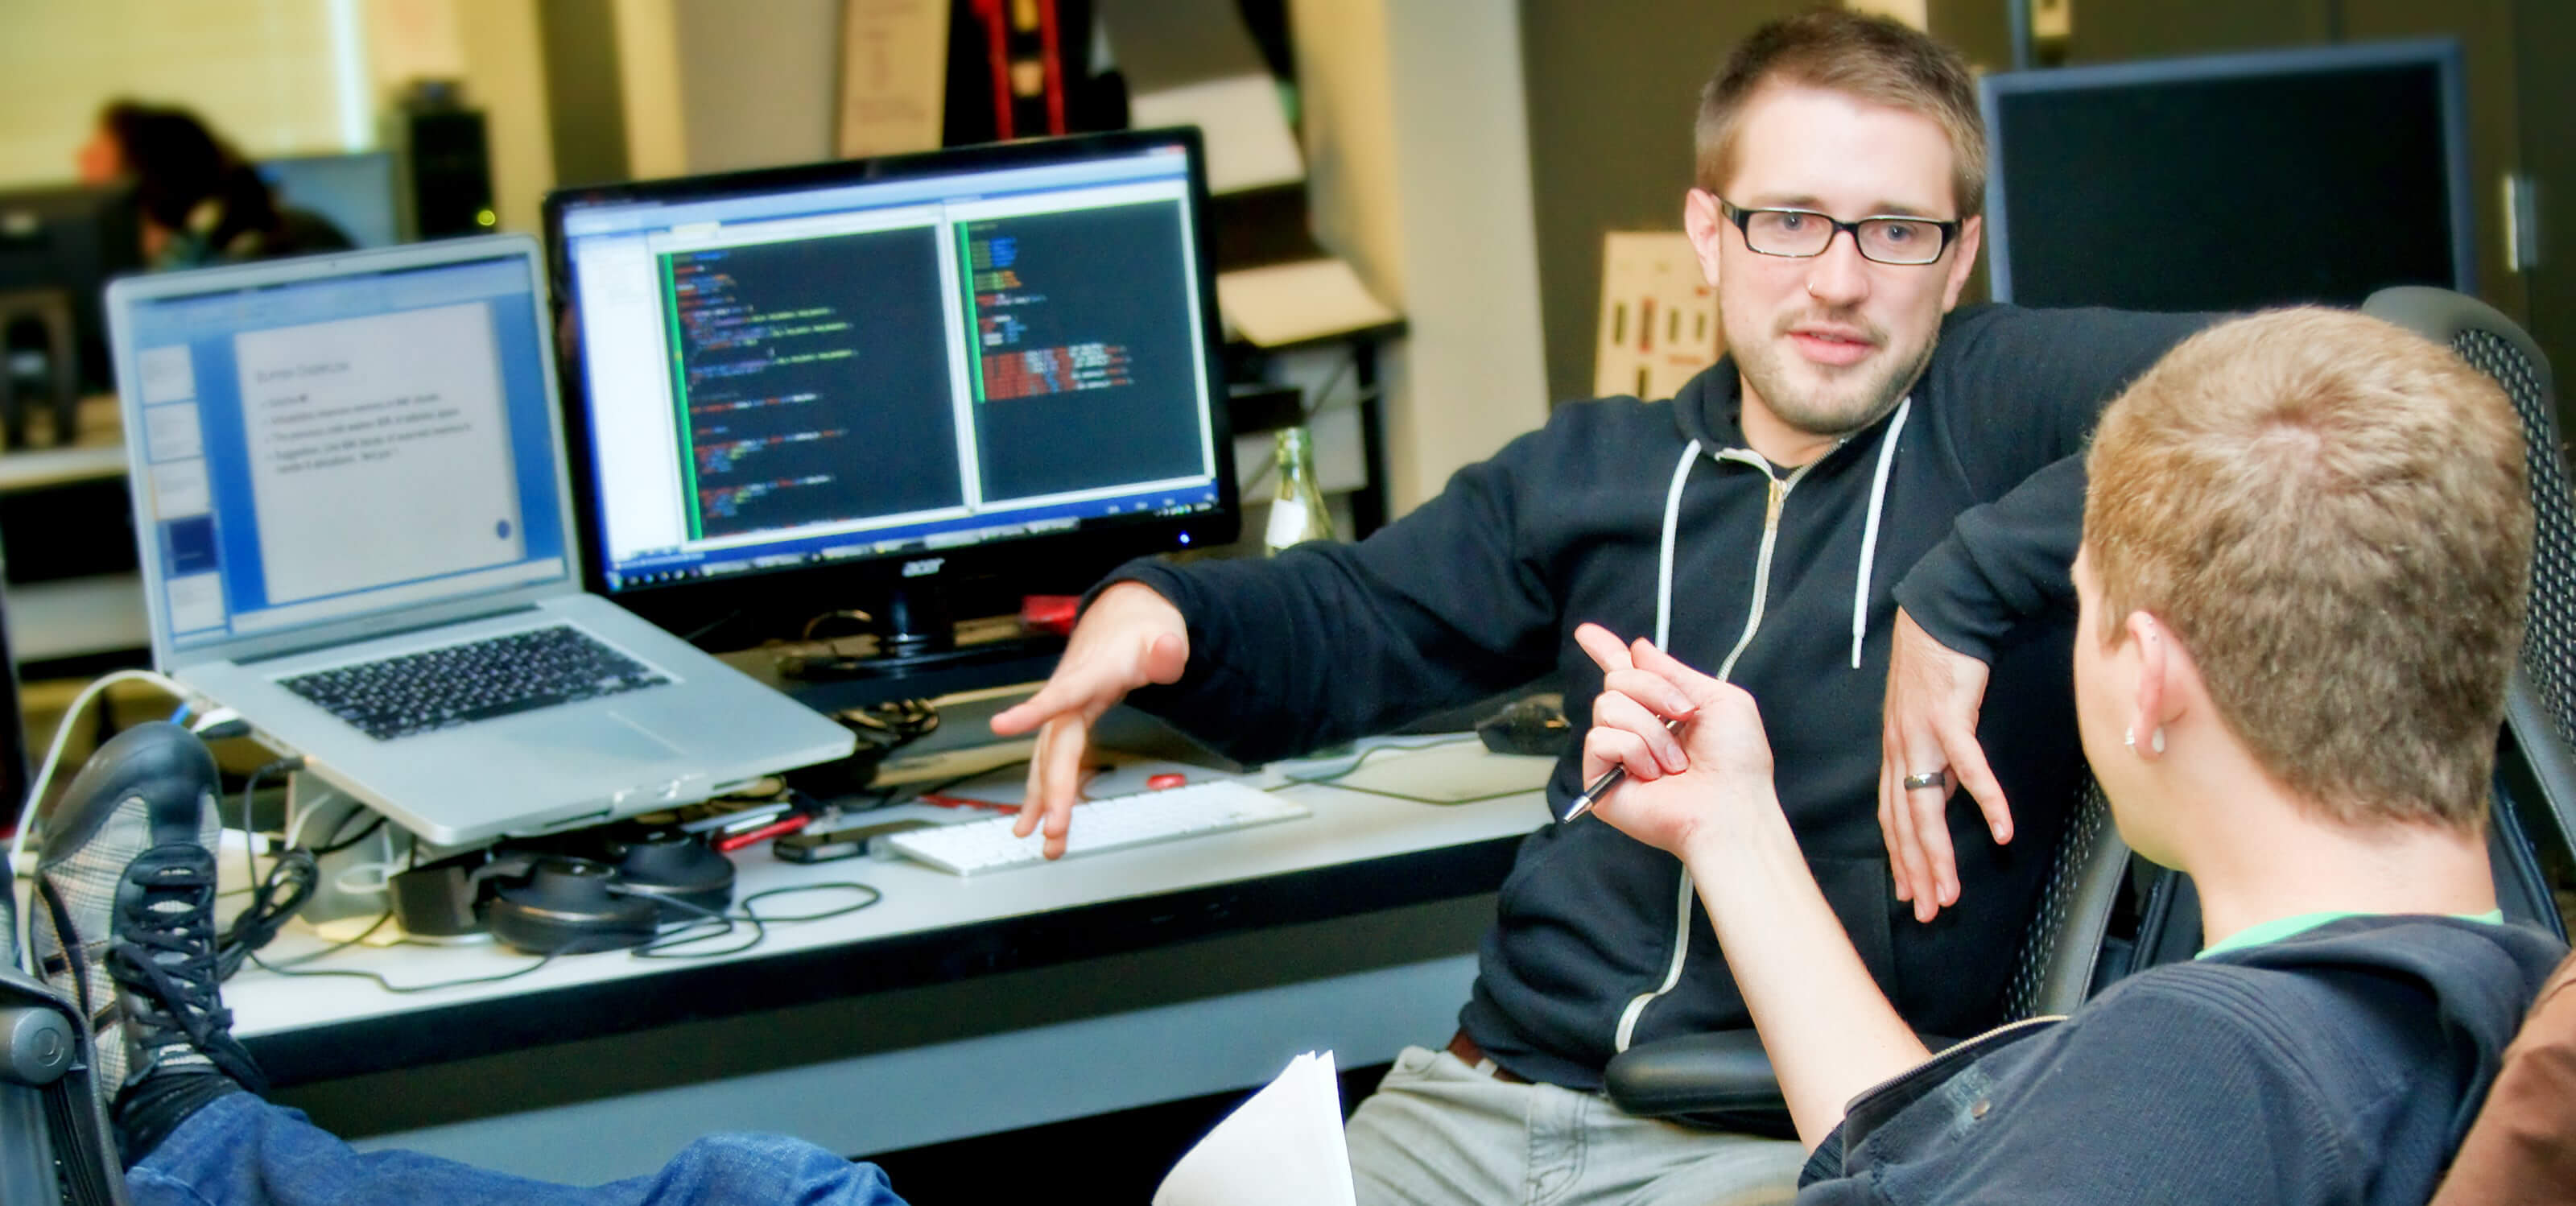 Two students chatting in their team space on the DigiPen campus